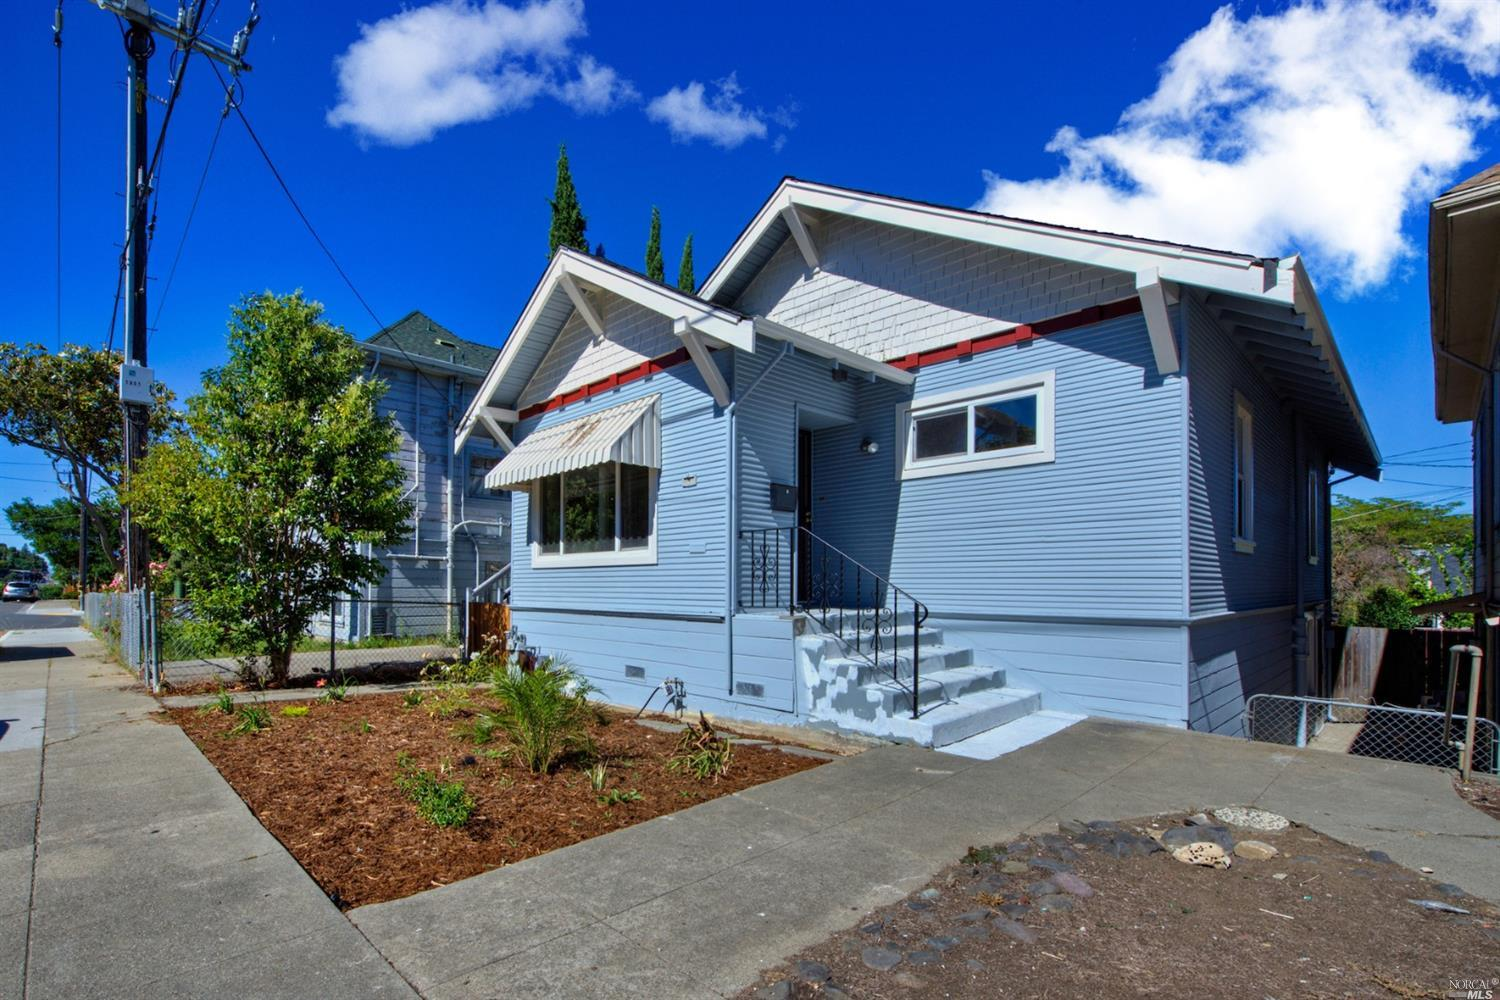 Charming Bungalow with plenty of natural light! This home features 2 bedrooms, 1 bathroom and a low